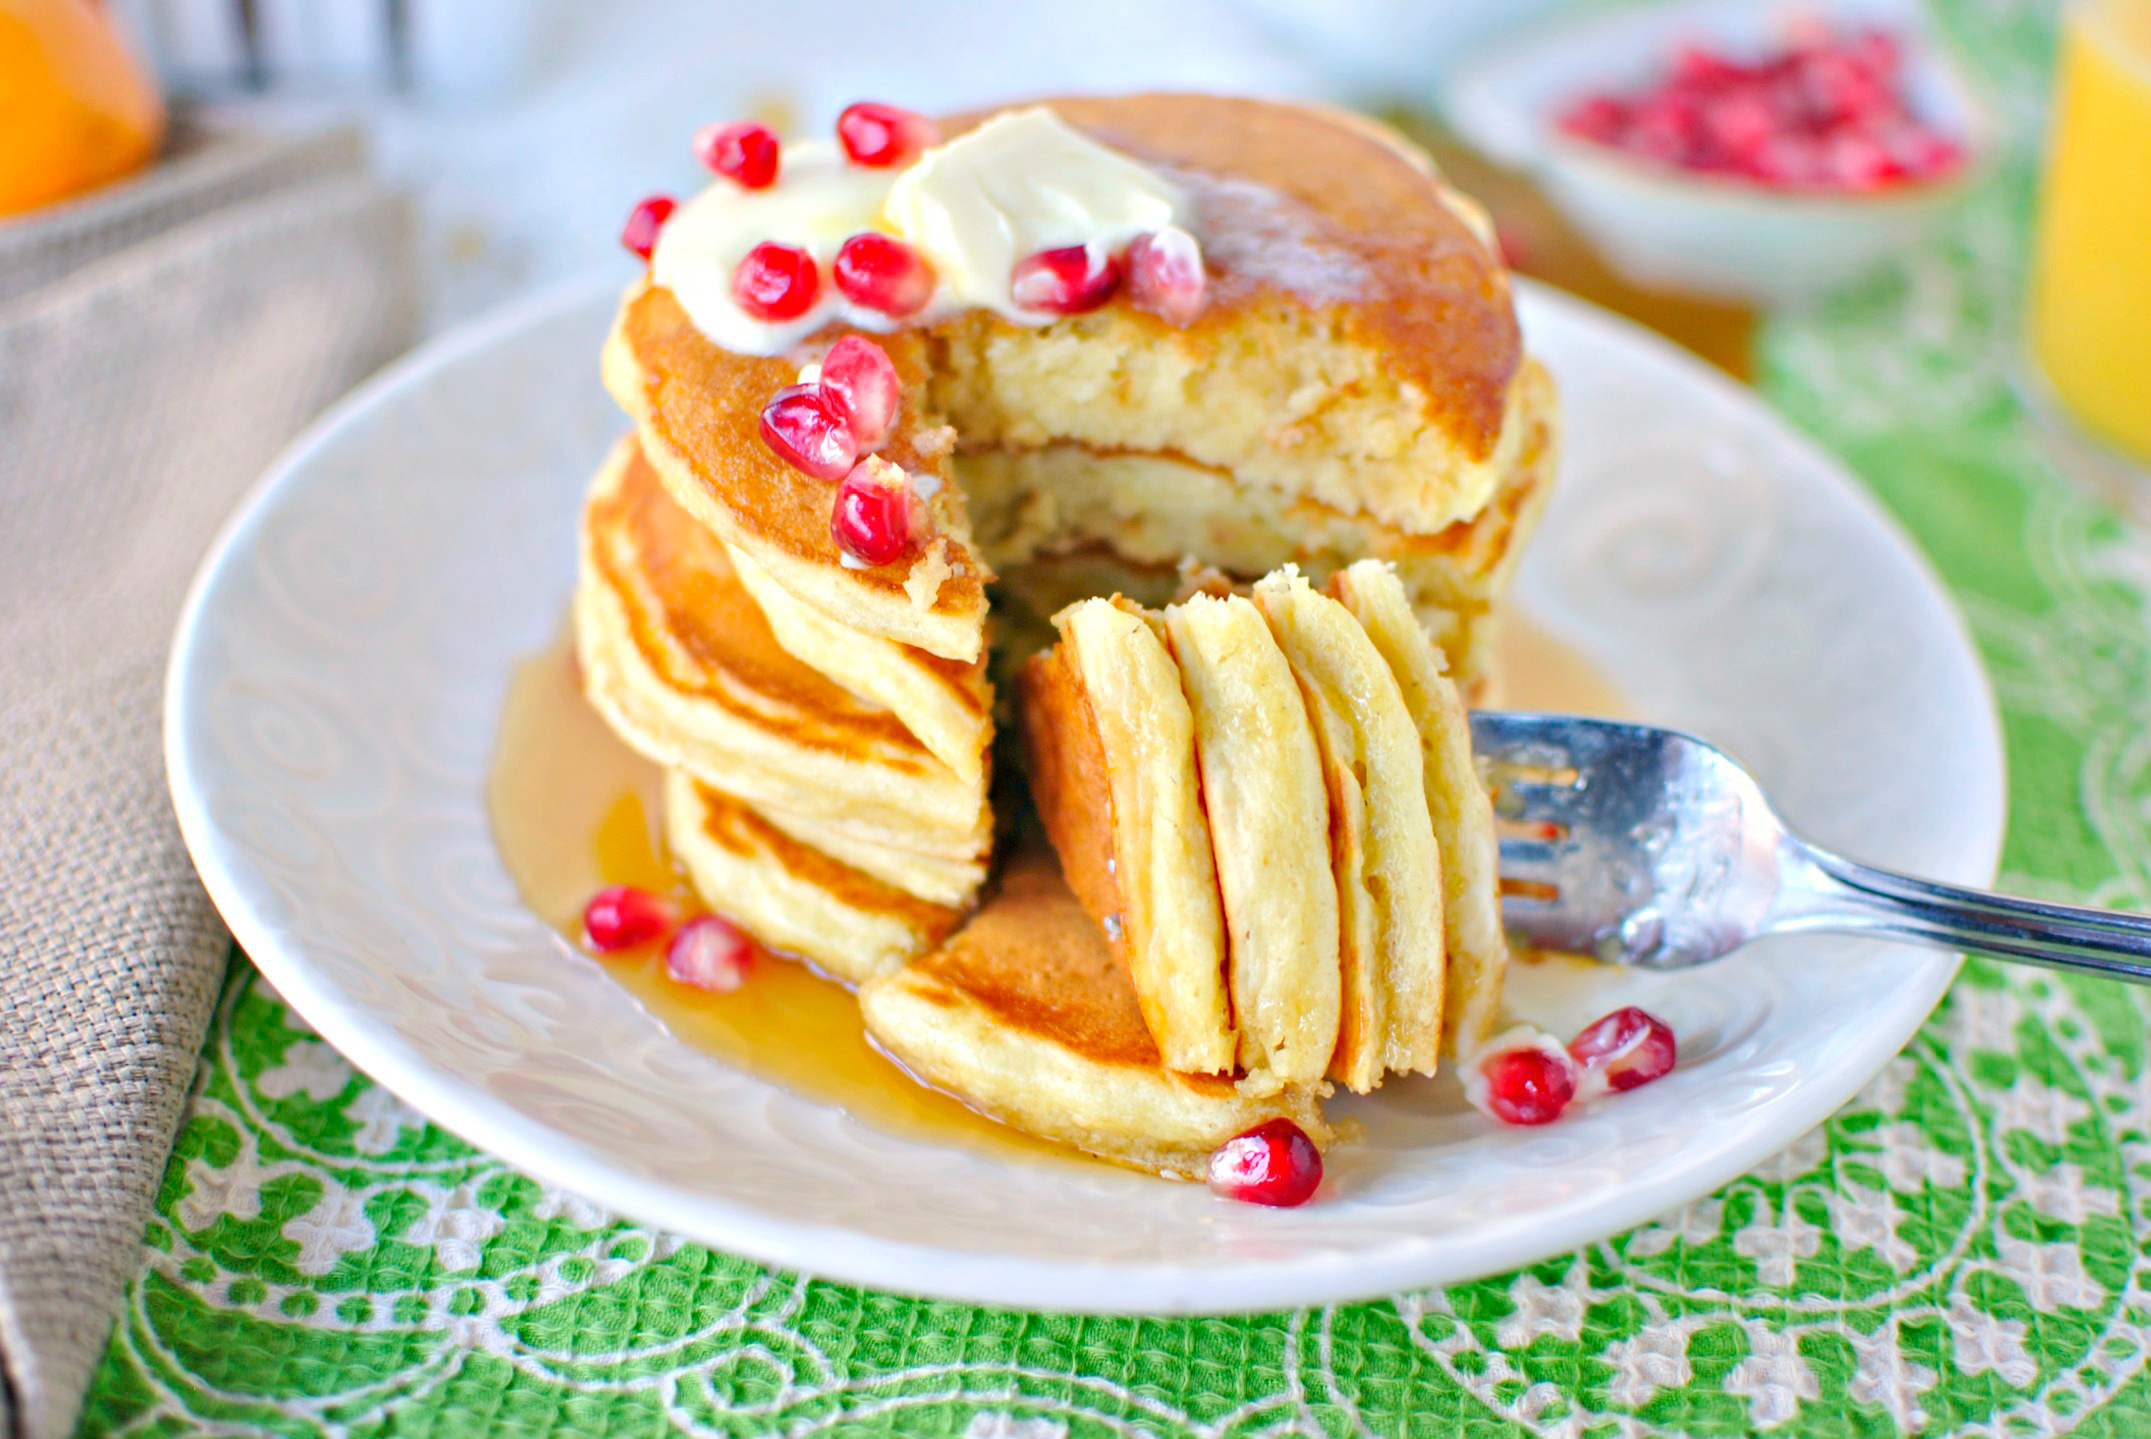 Tasty Kitchen Blog: Eggnog Pancakes. Guest post by Laurie McNamara of Simply Scratch, recipe submitted by TK member Kita of Pass the Sushi.